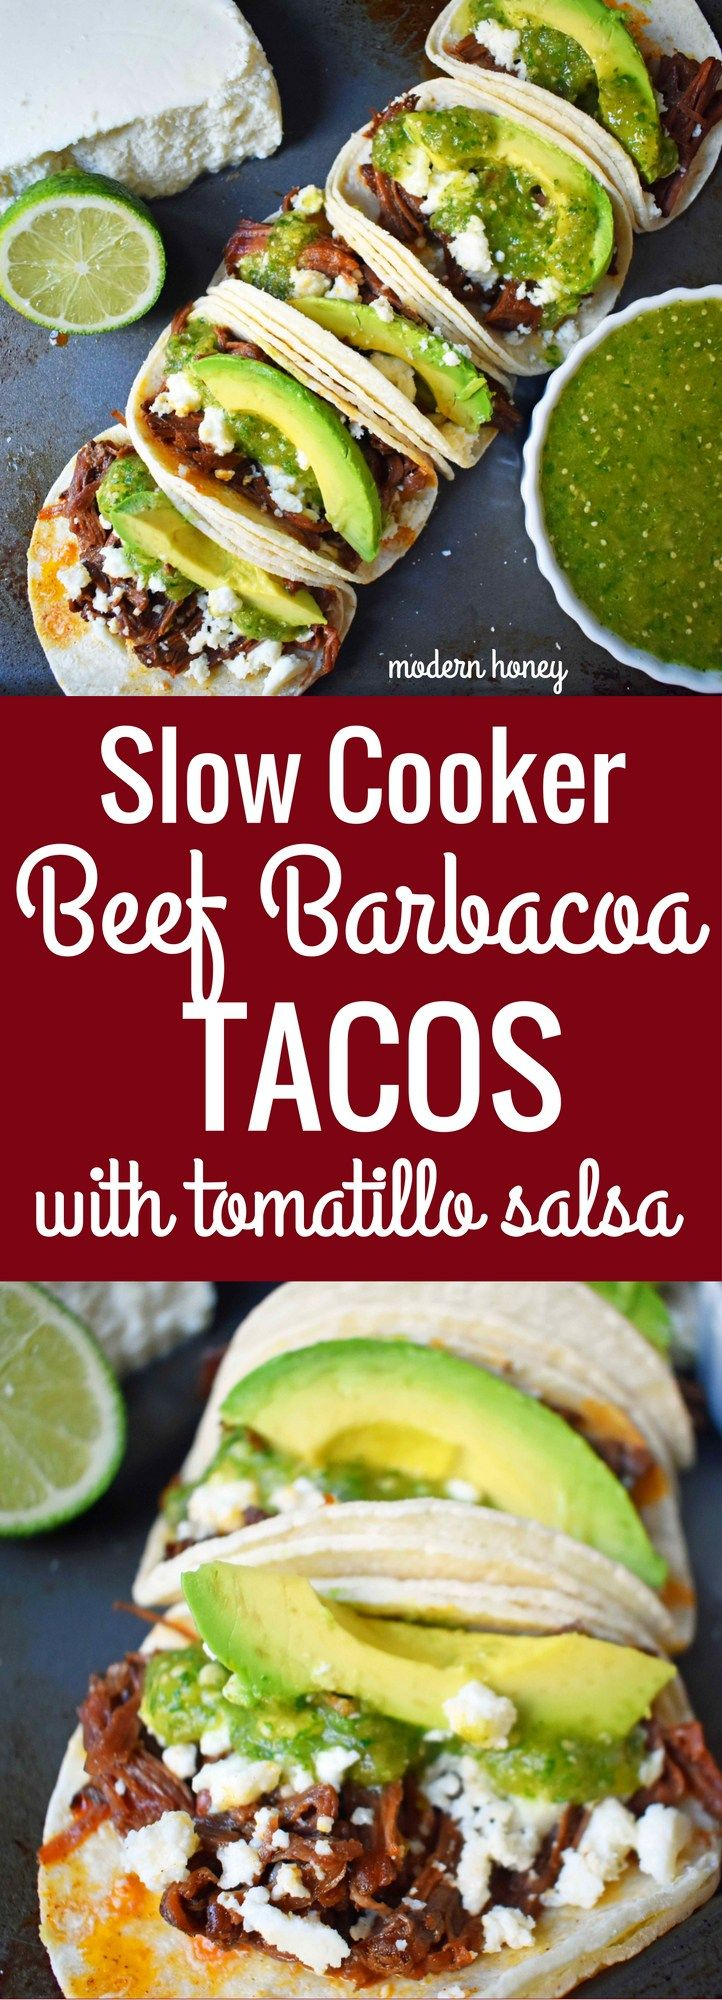 Slow Cooker Beef Barbacoa Tacos with Tomatillo Salsa   Modern Honey.  Meh.  Not my favorite.